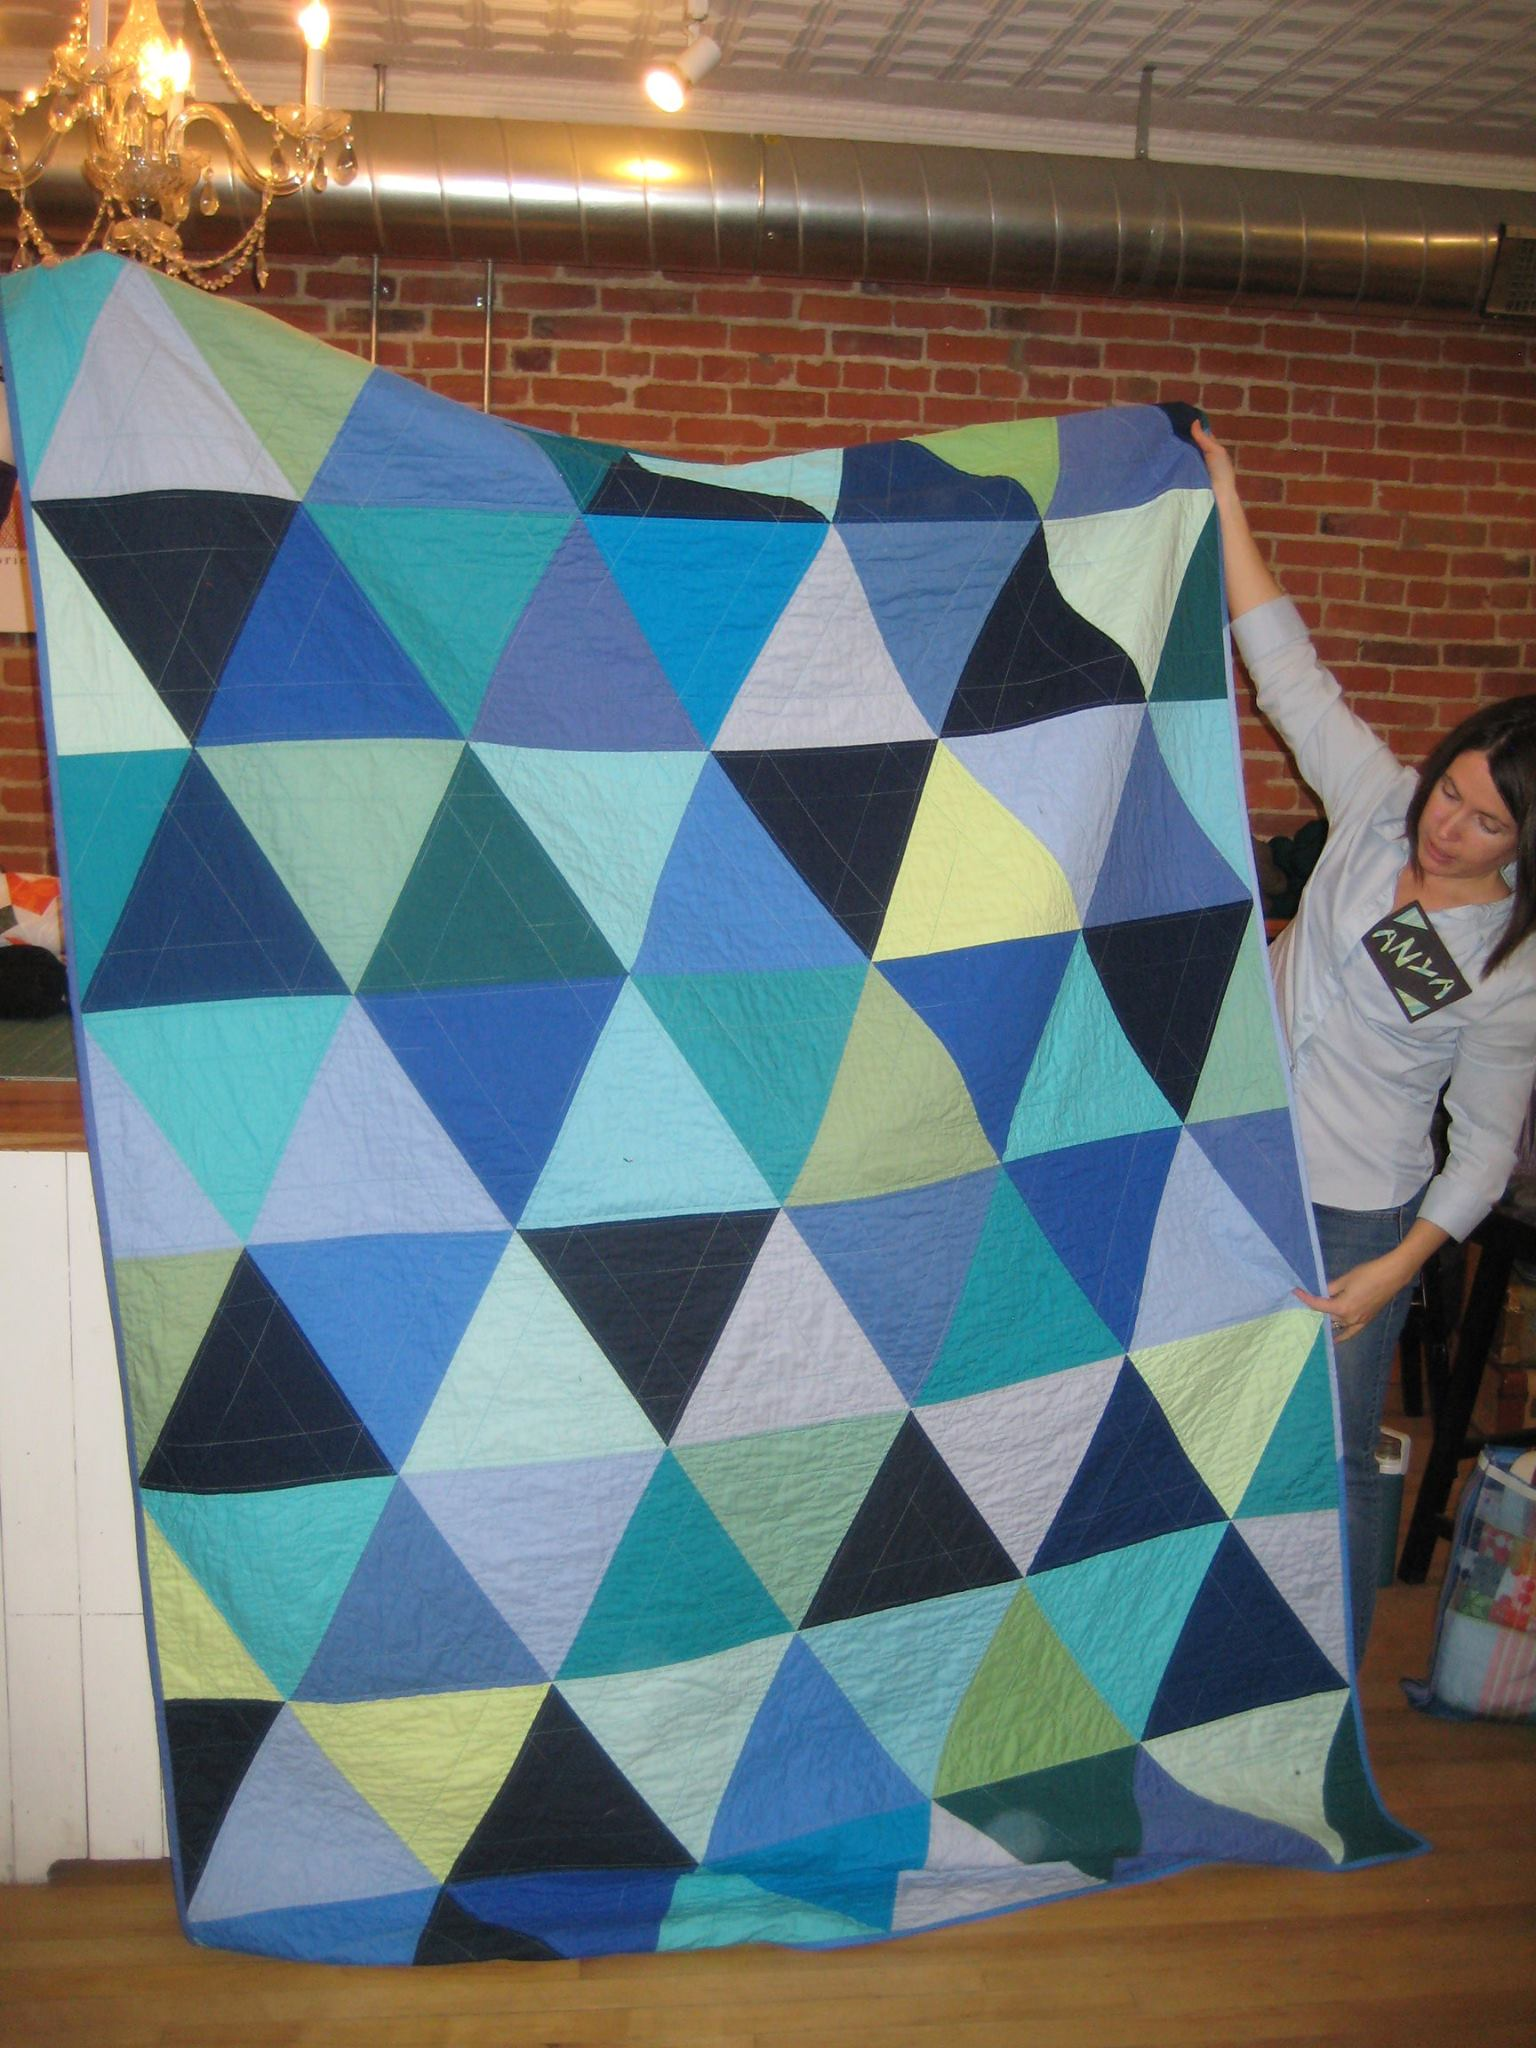 Shades of blue quilt for Anya's daughter.